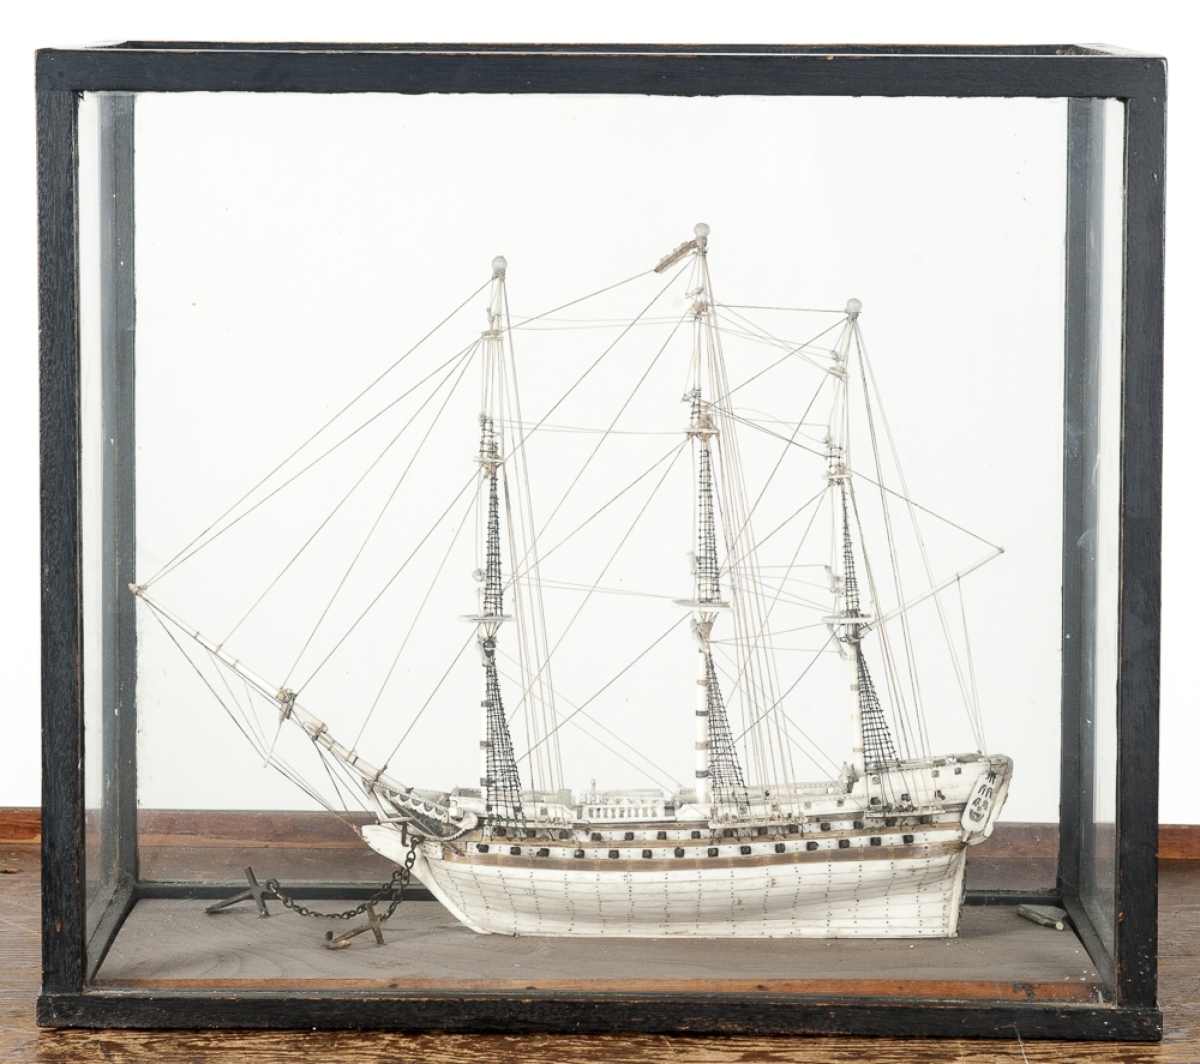 The Napoleonic prisoner of war bone ship model from the early Nineteenth Century brought $4,636.